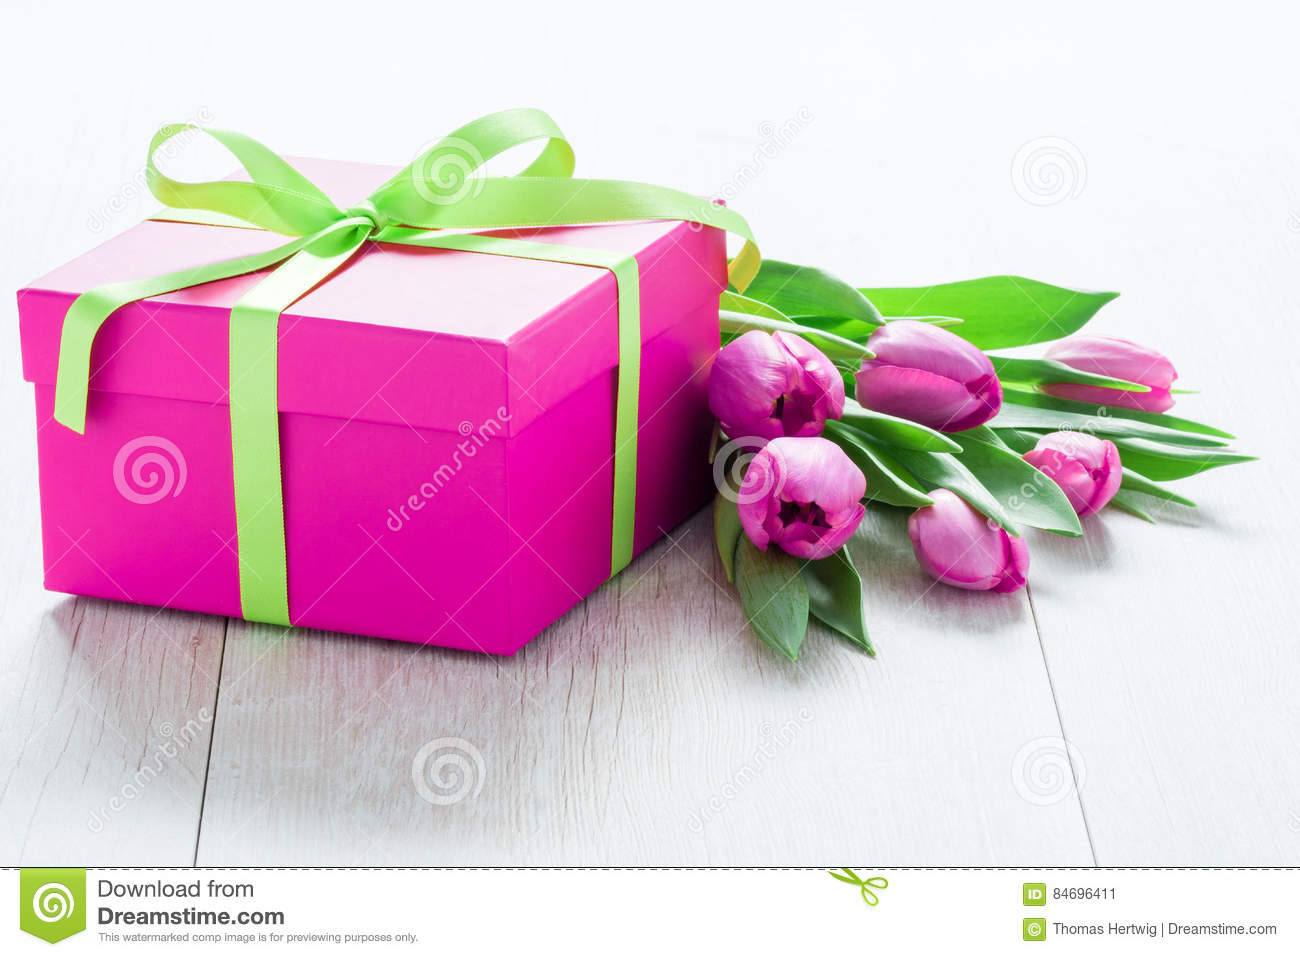 Tulip Flowers and Giftbox on rustic table for March 8, International Womens Day, Birthday , Valentines Day or Mothers day